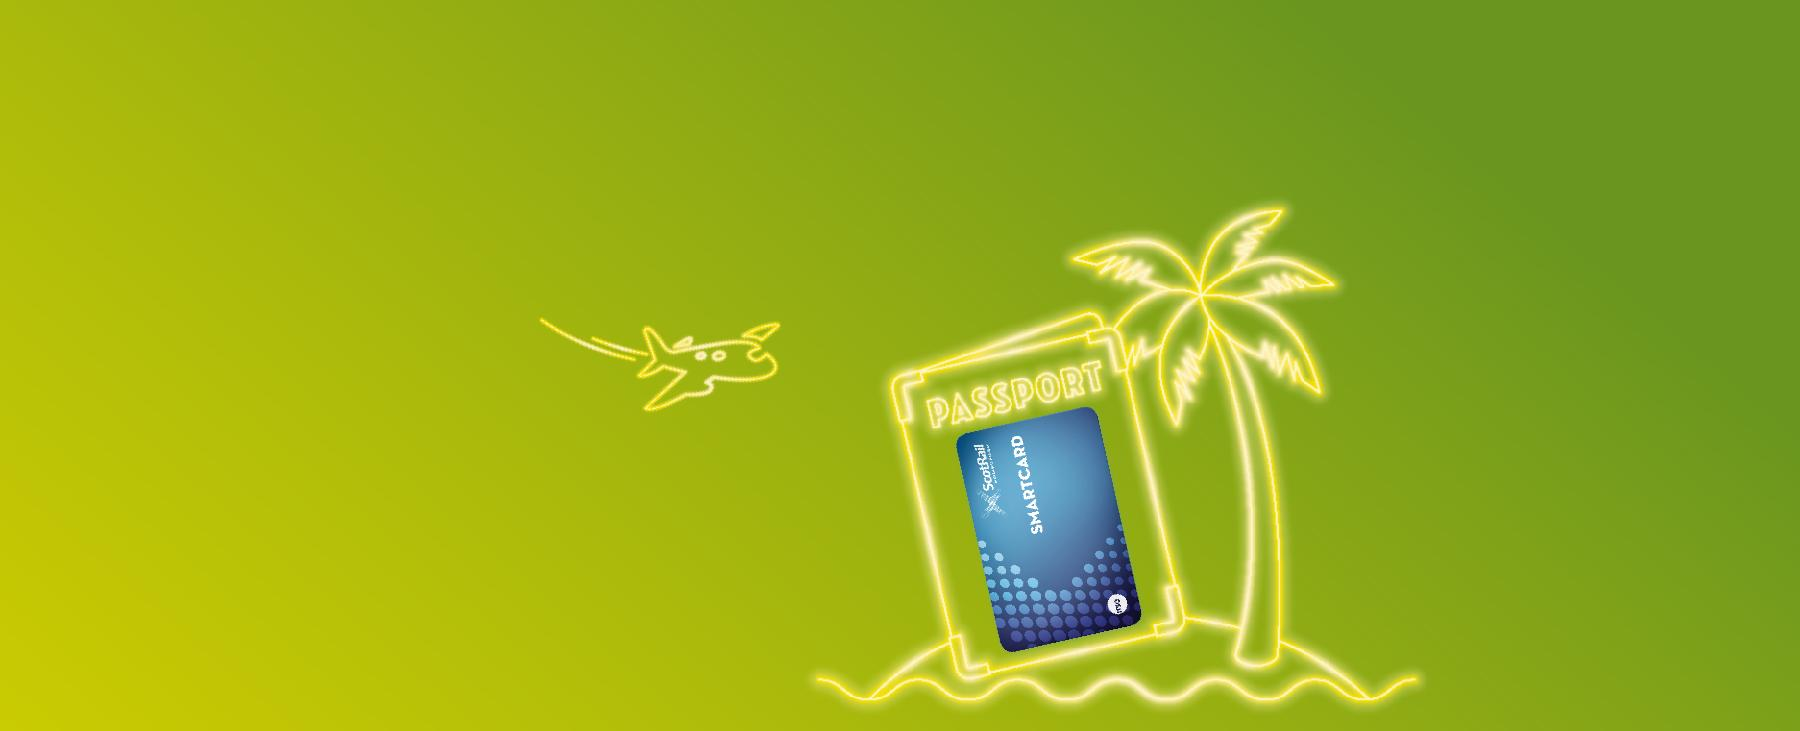 Smartcard Dubai competition image - plane, passport and palm tree